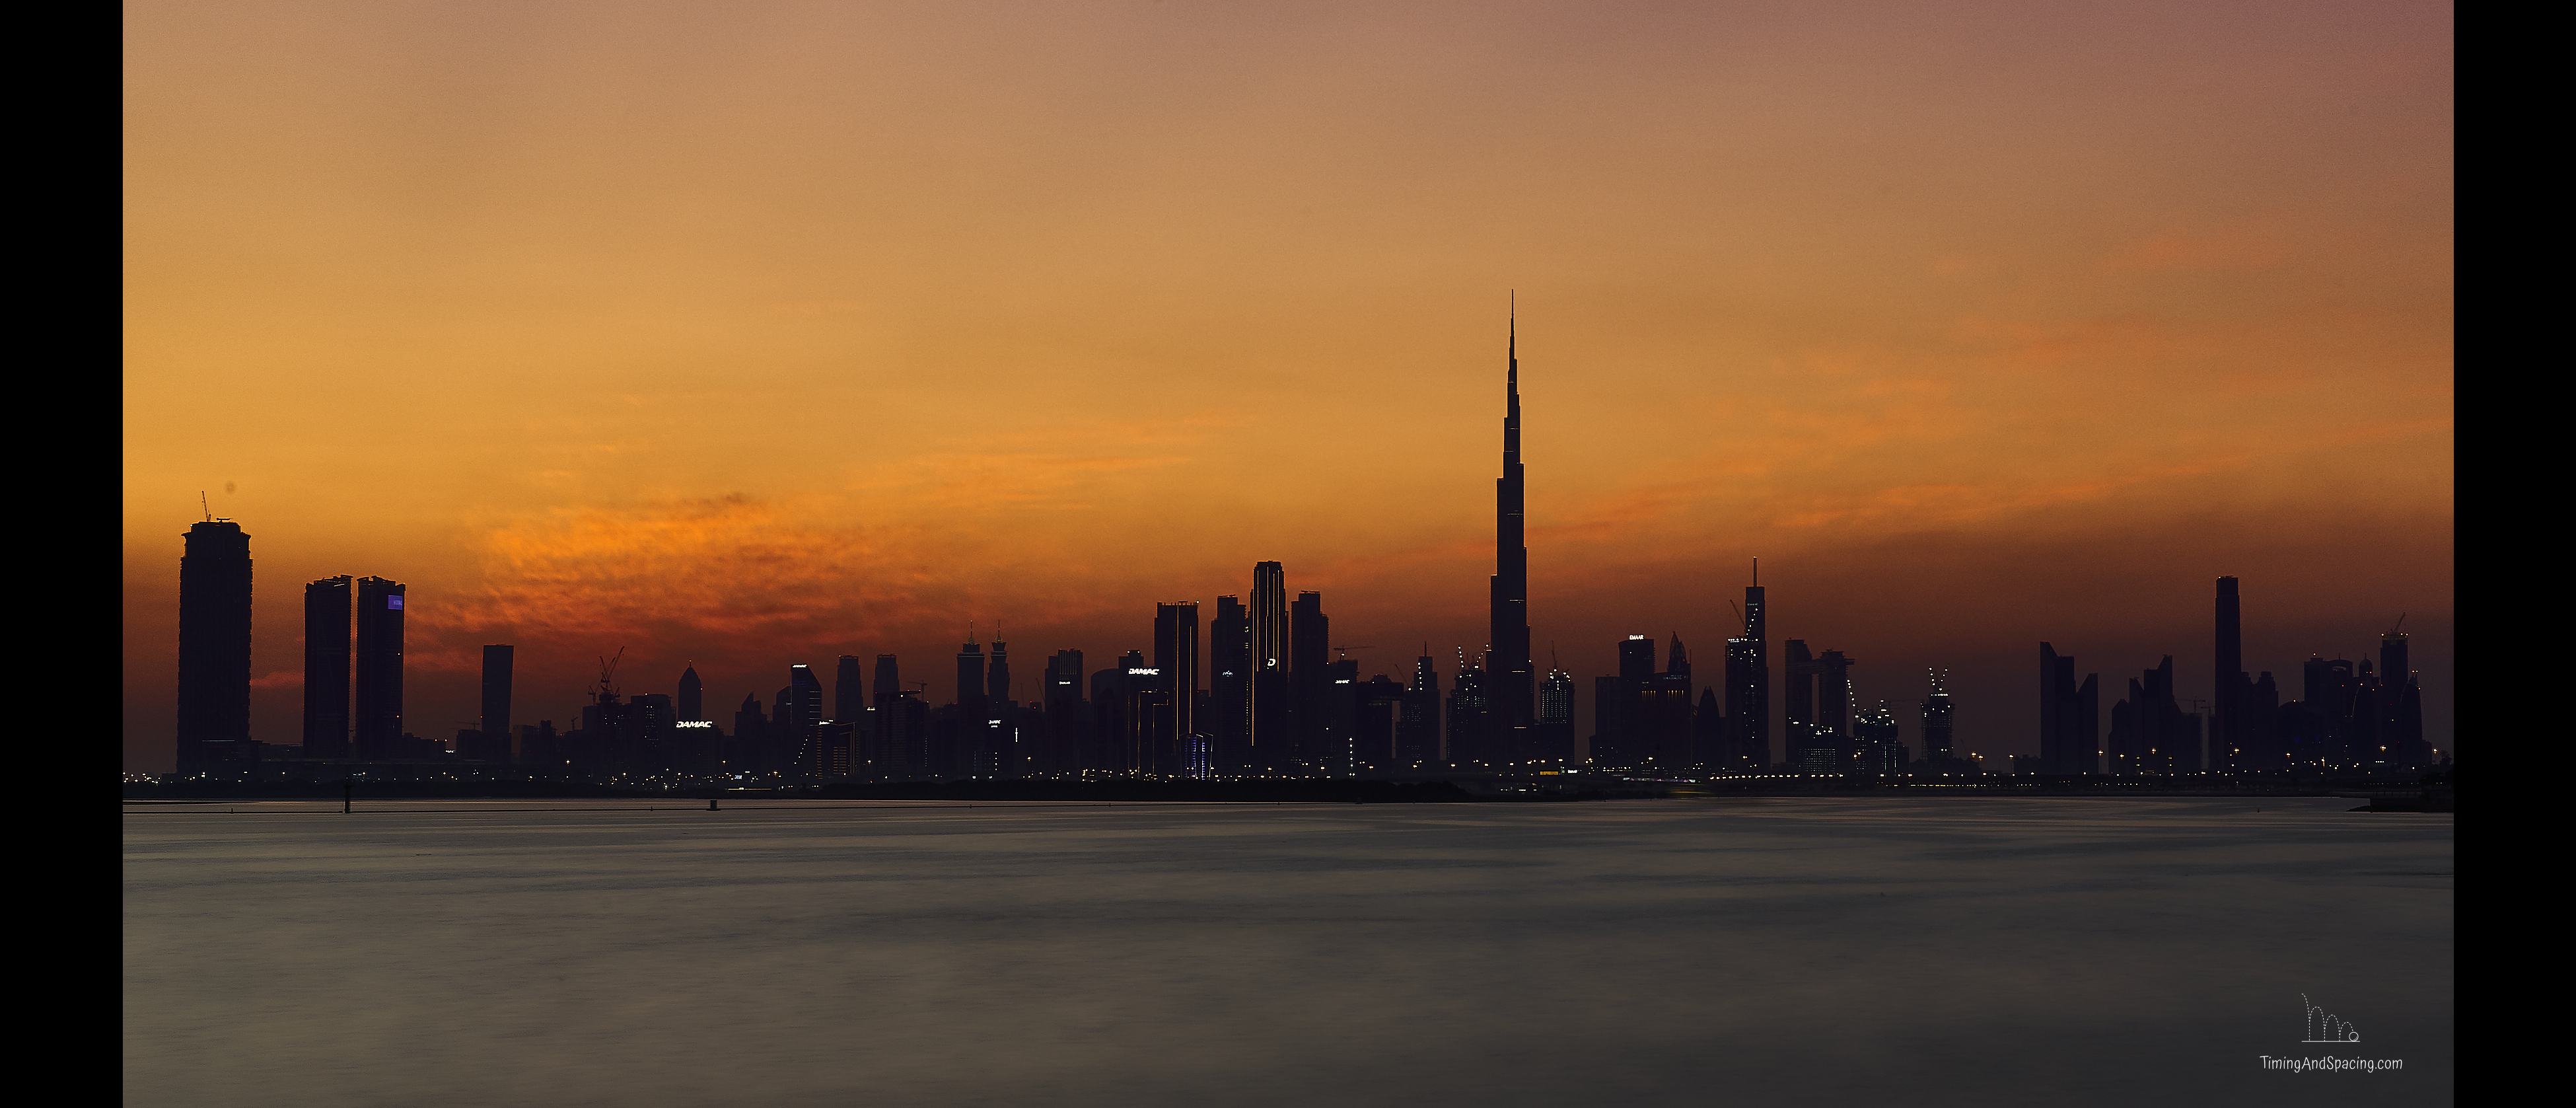 Dubai In GoldenHour